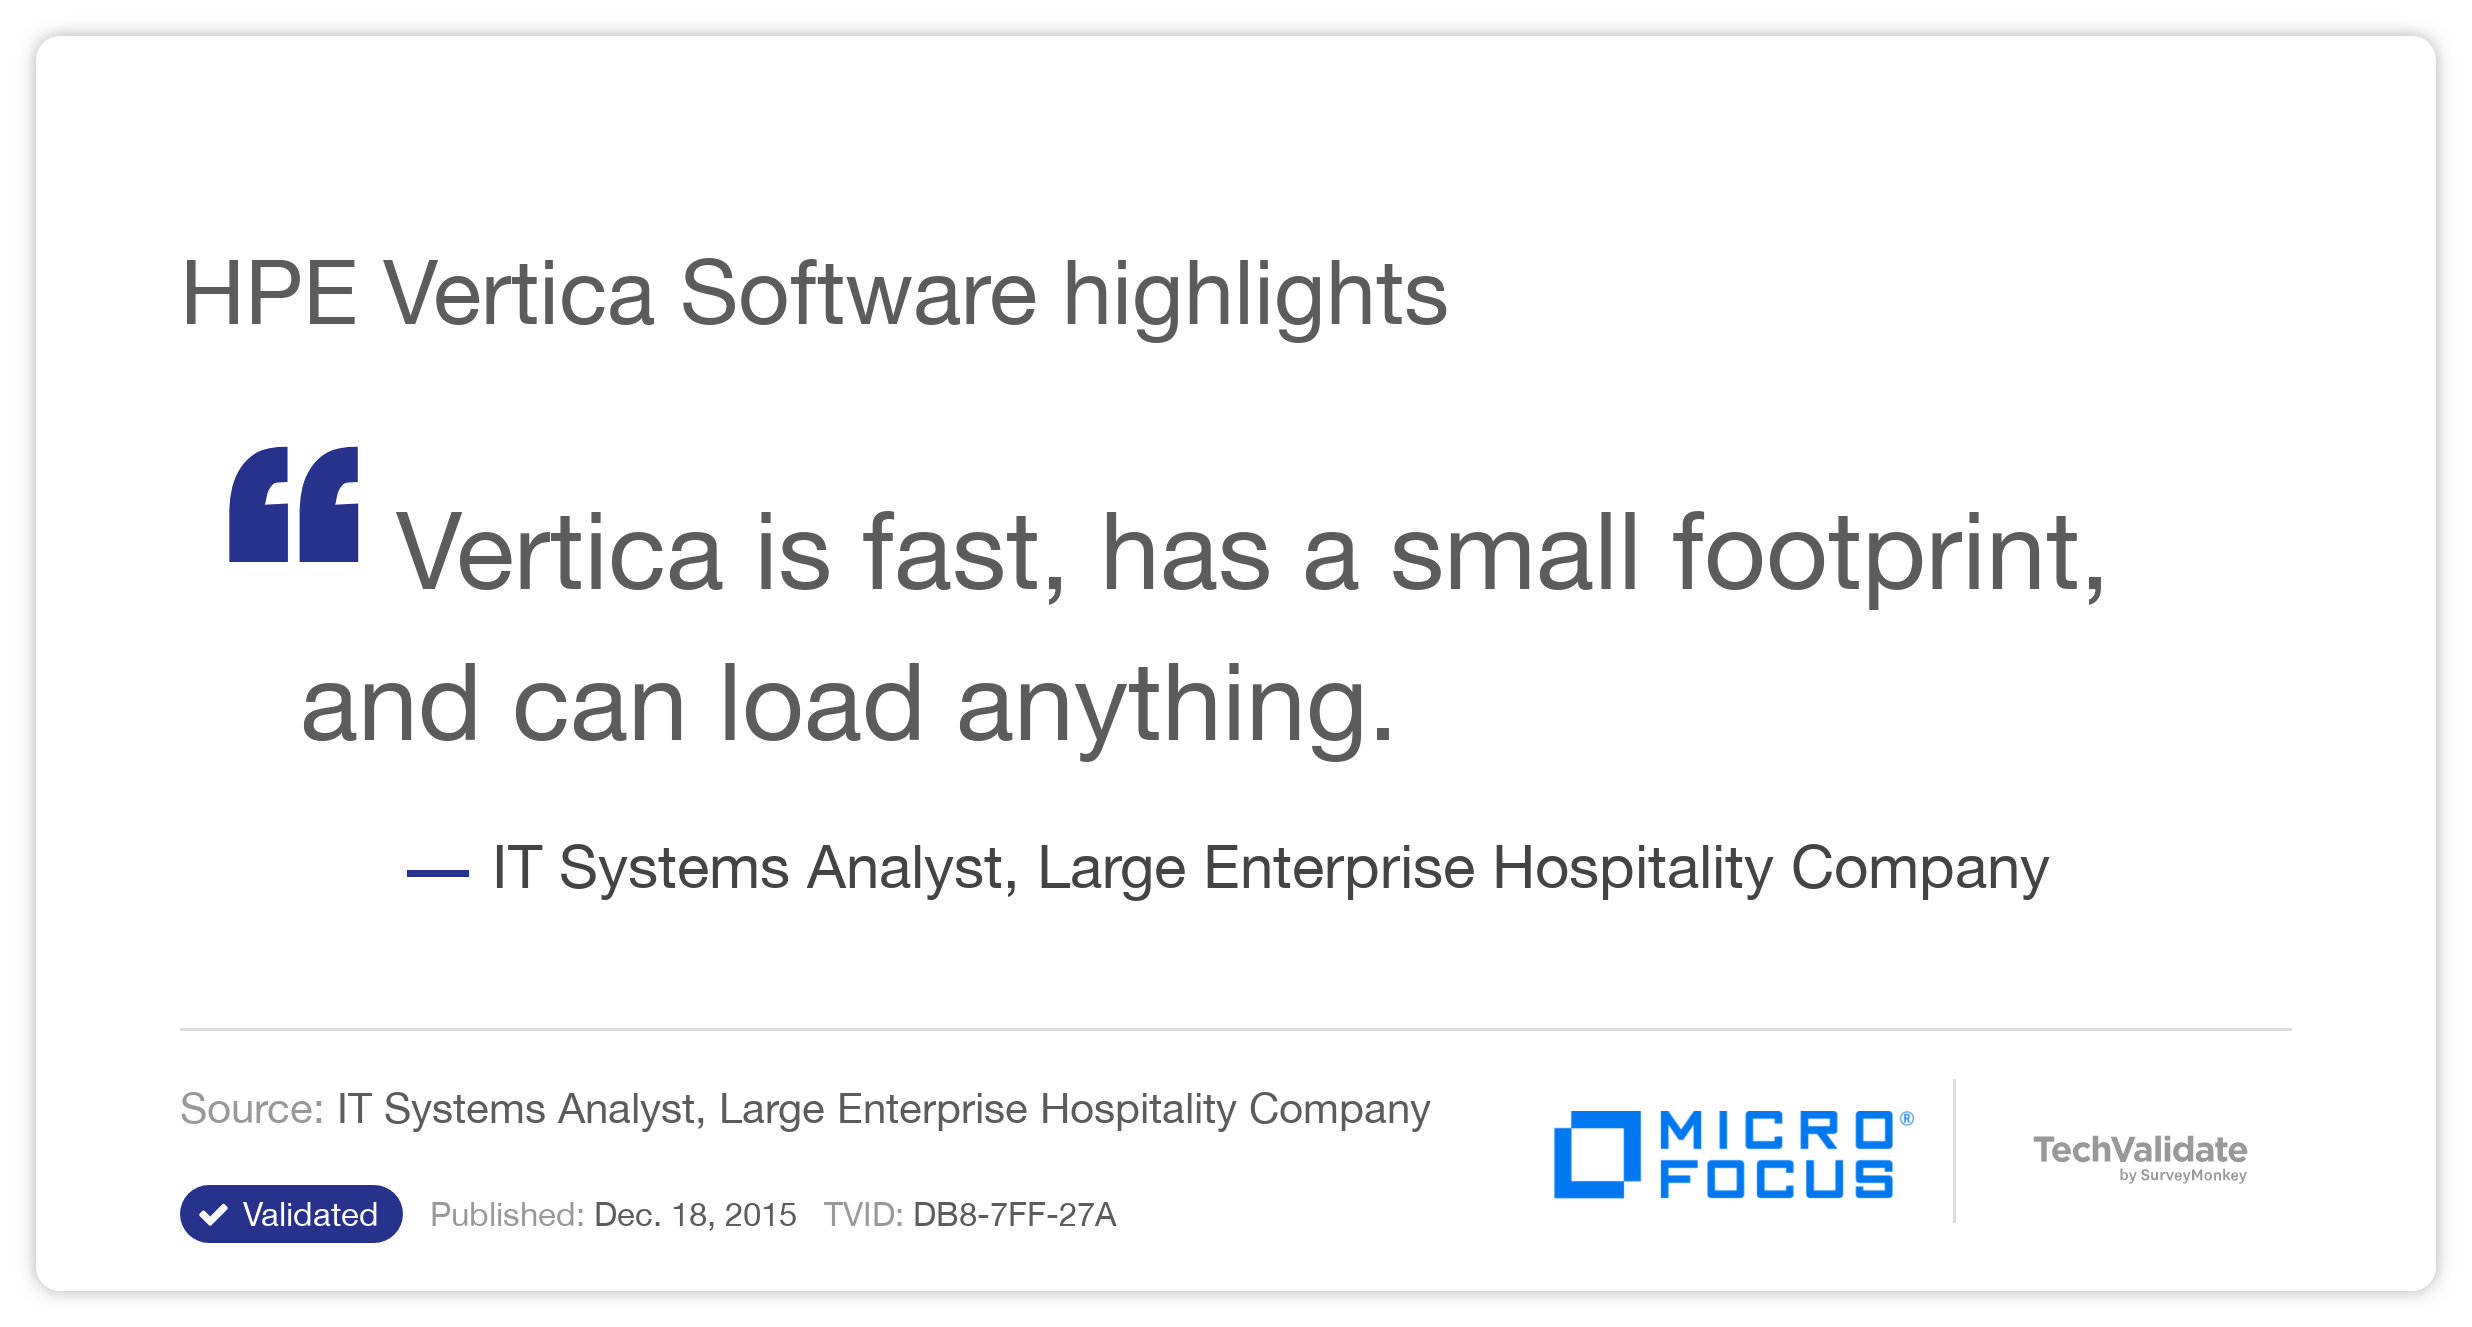 HPE Vertica Software highlights